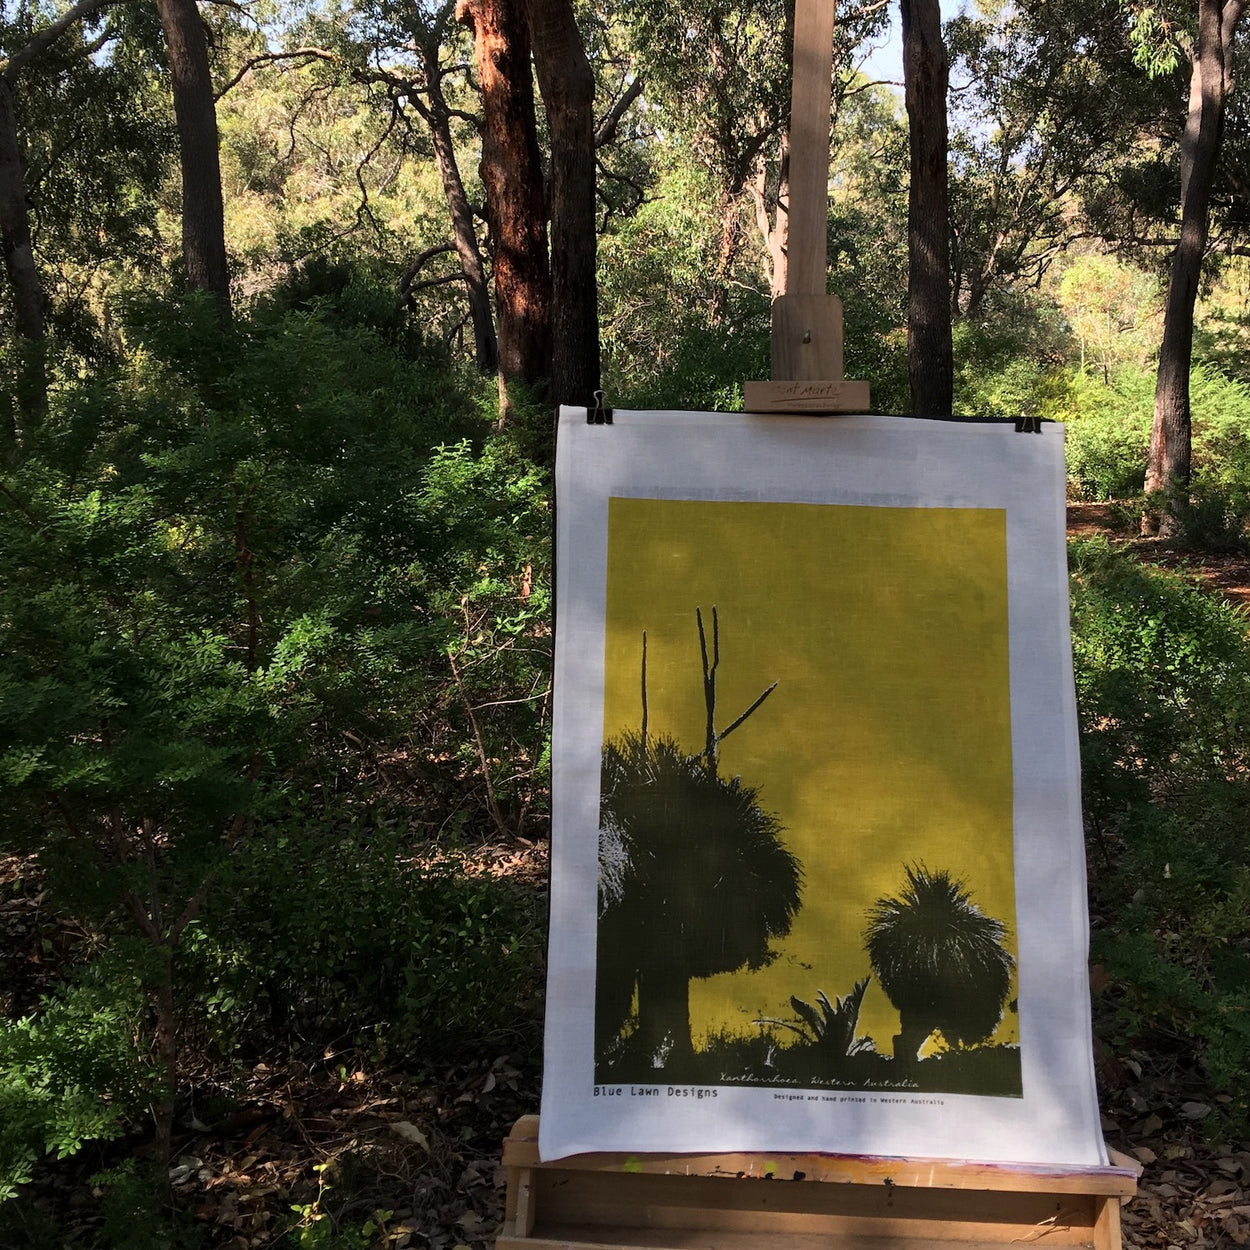 Photograph of a grass trees tea towel on an easel in the forest.